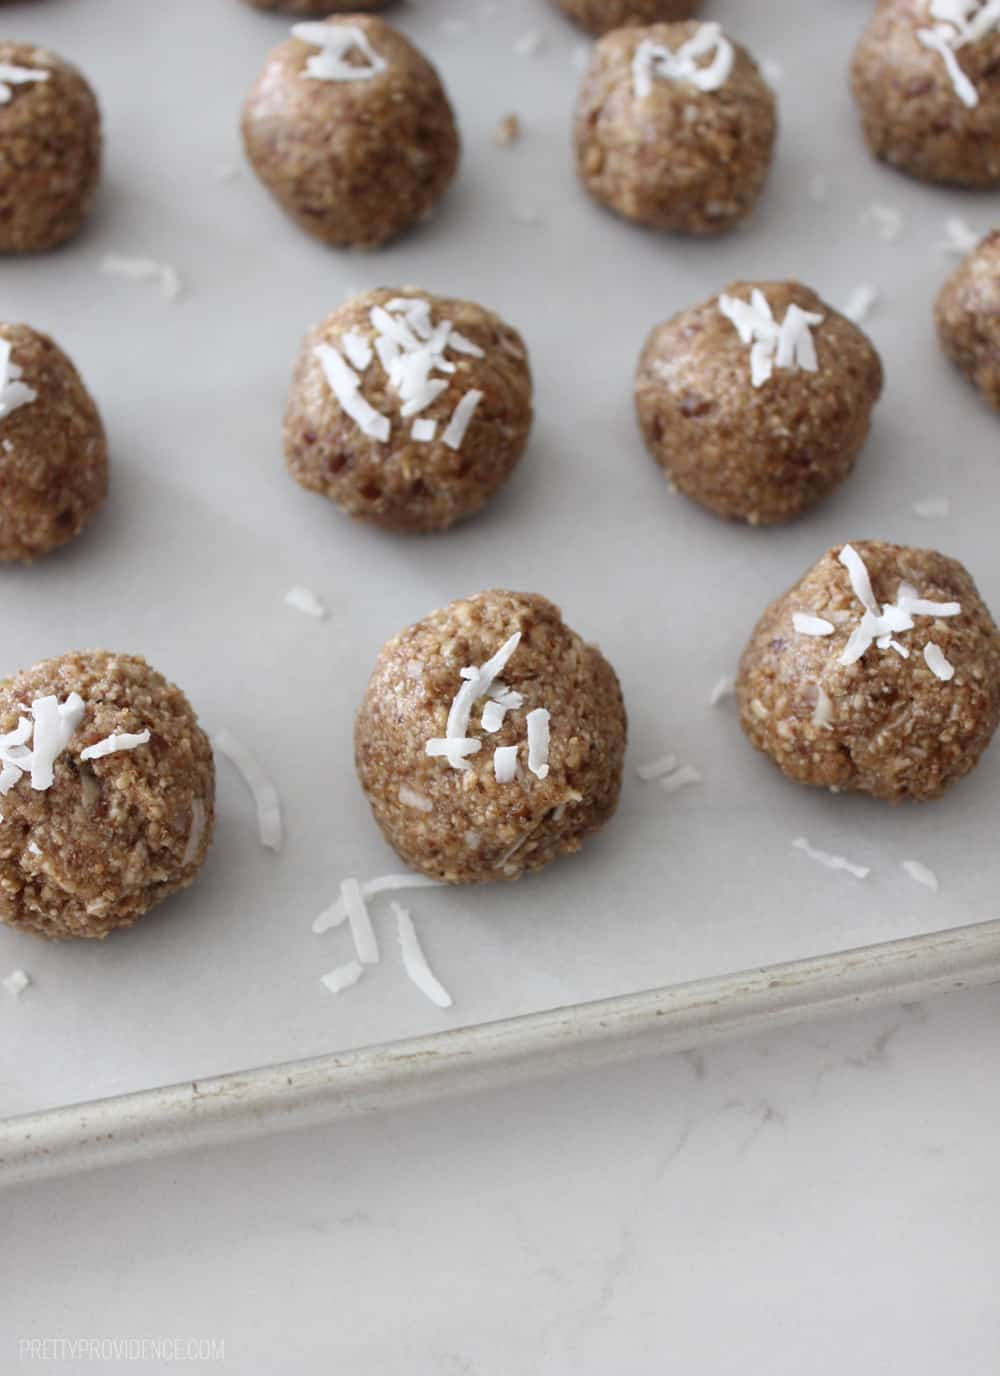 These super easy protein balls are the perfect healthy way to curb that sweet tooth! Even my kids love them!